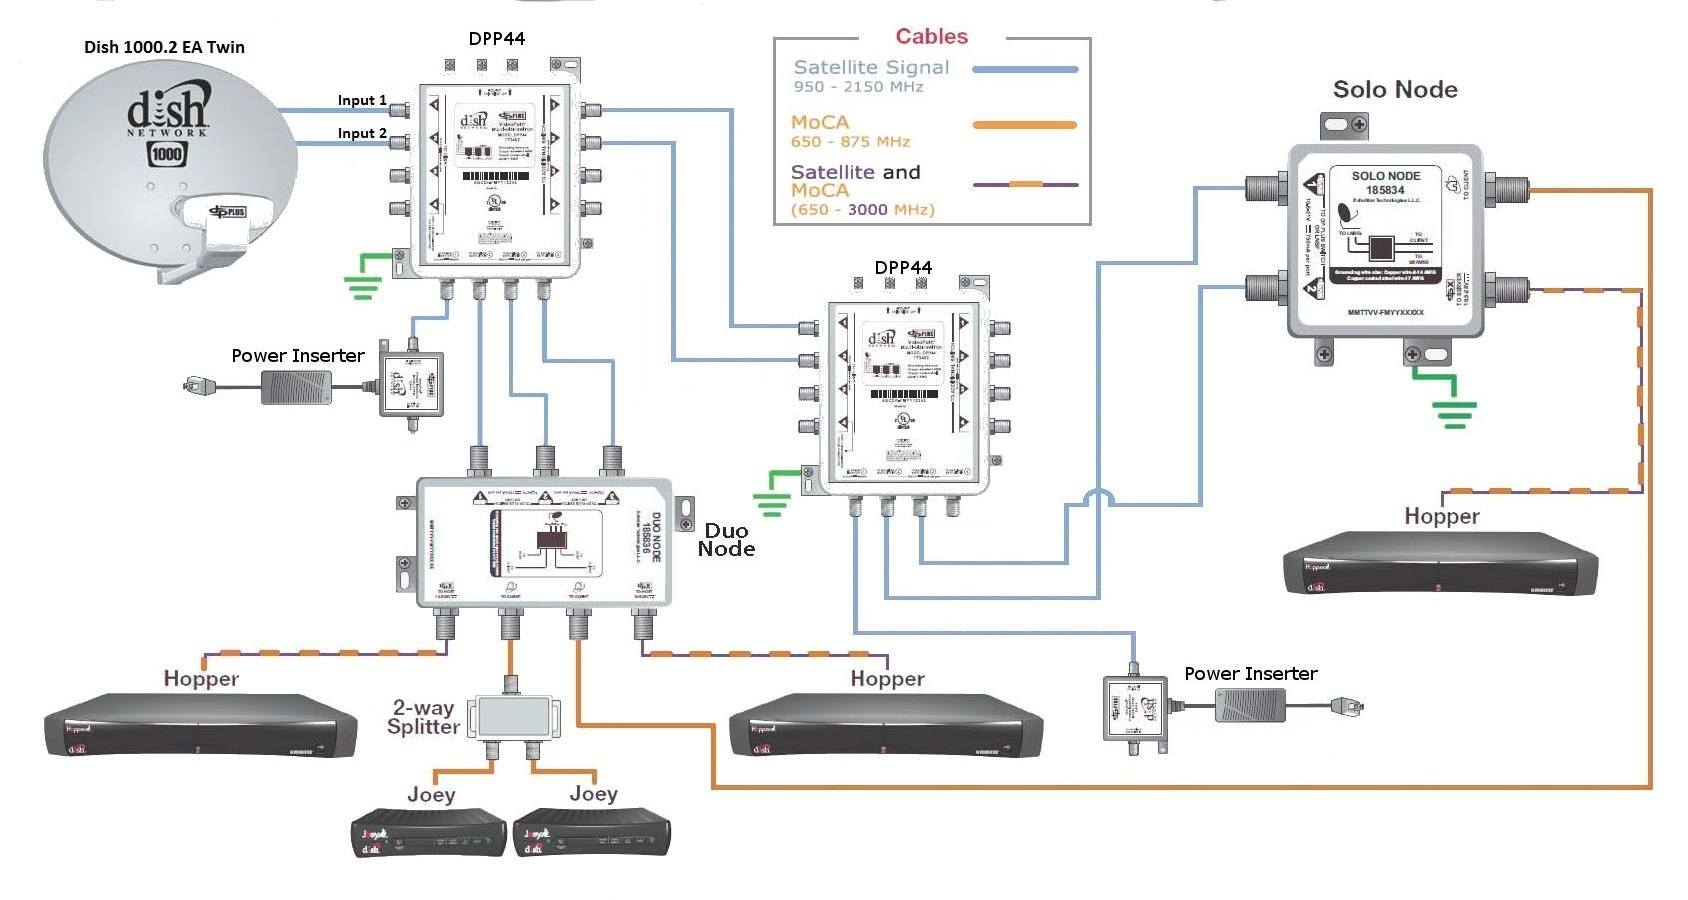 dish network wiring diagram efcaviation com dish network wiring diagrams dual tuner at bayanpartner.co